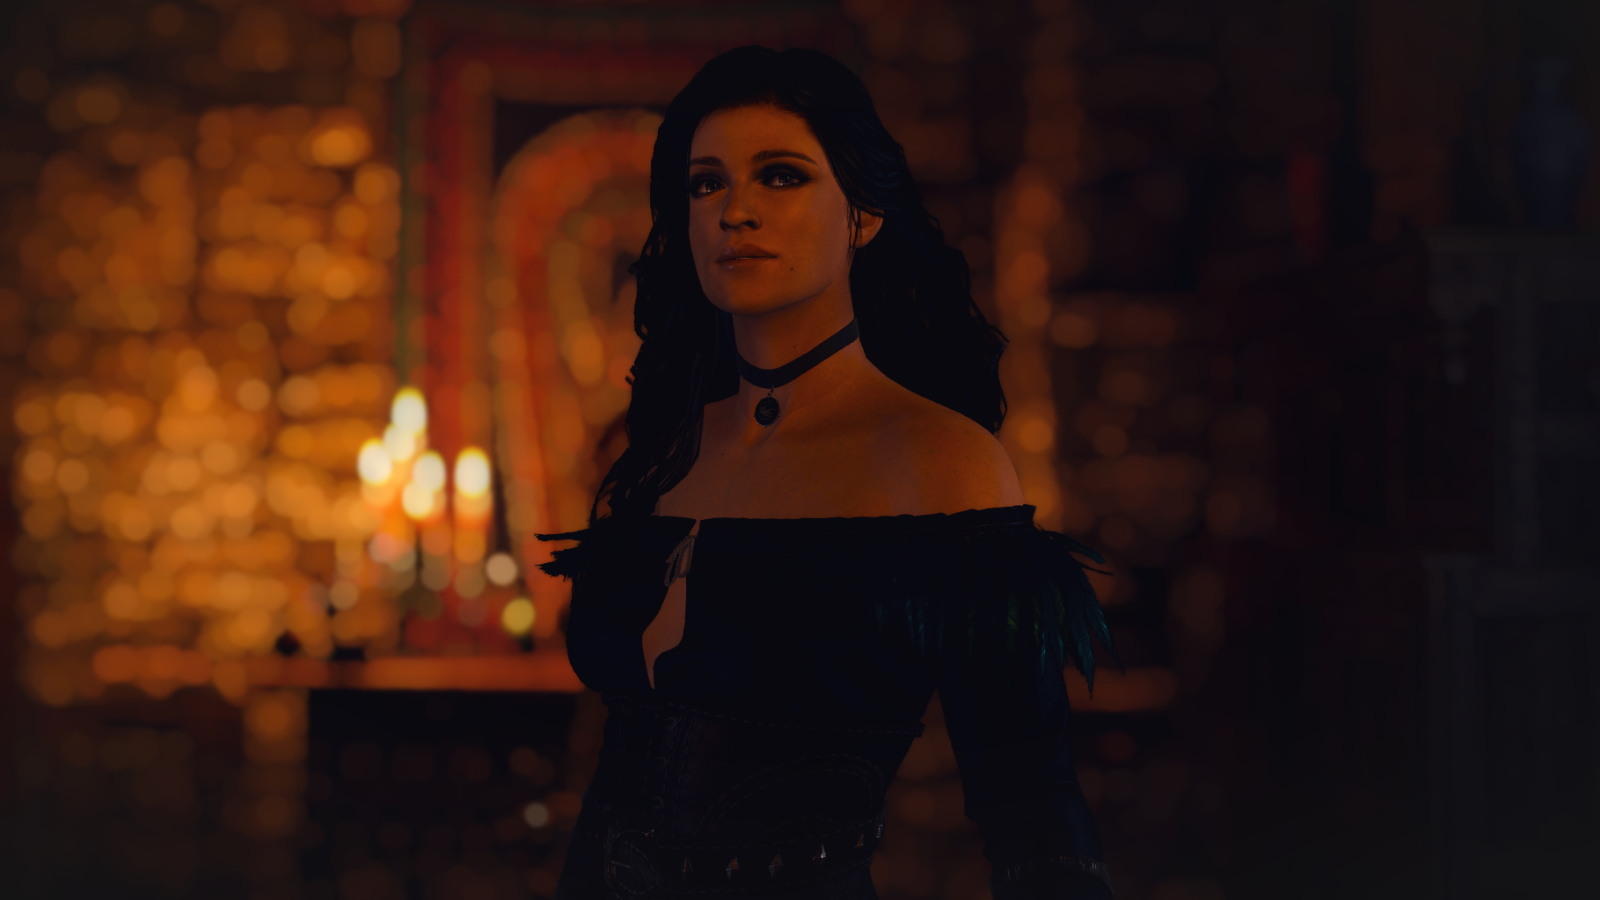 That moody medieval lighting is a good vibe for this Sorceress's makeover